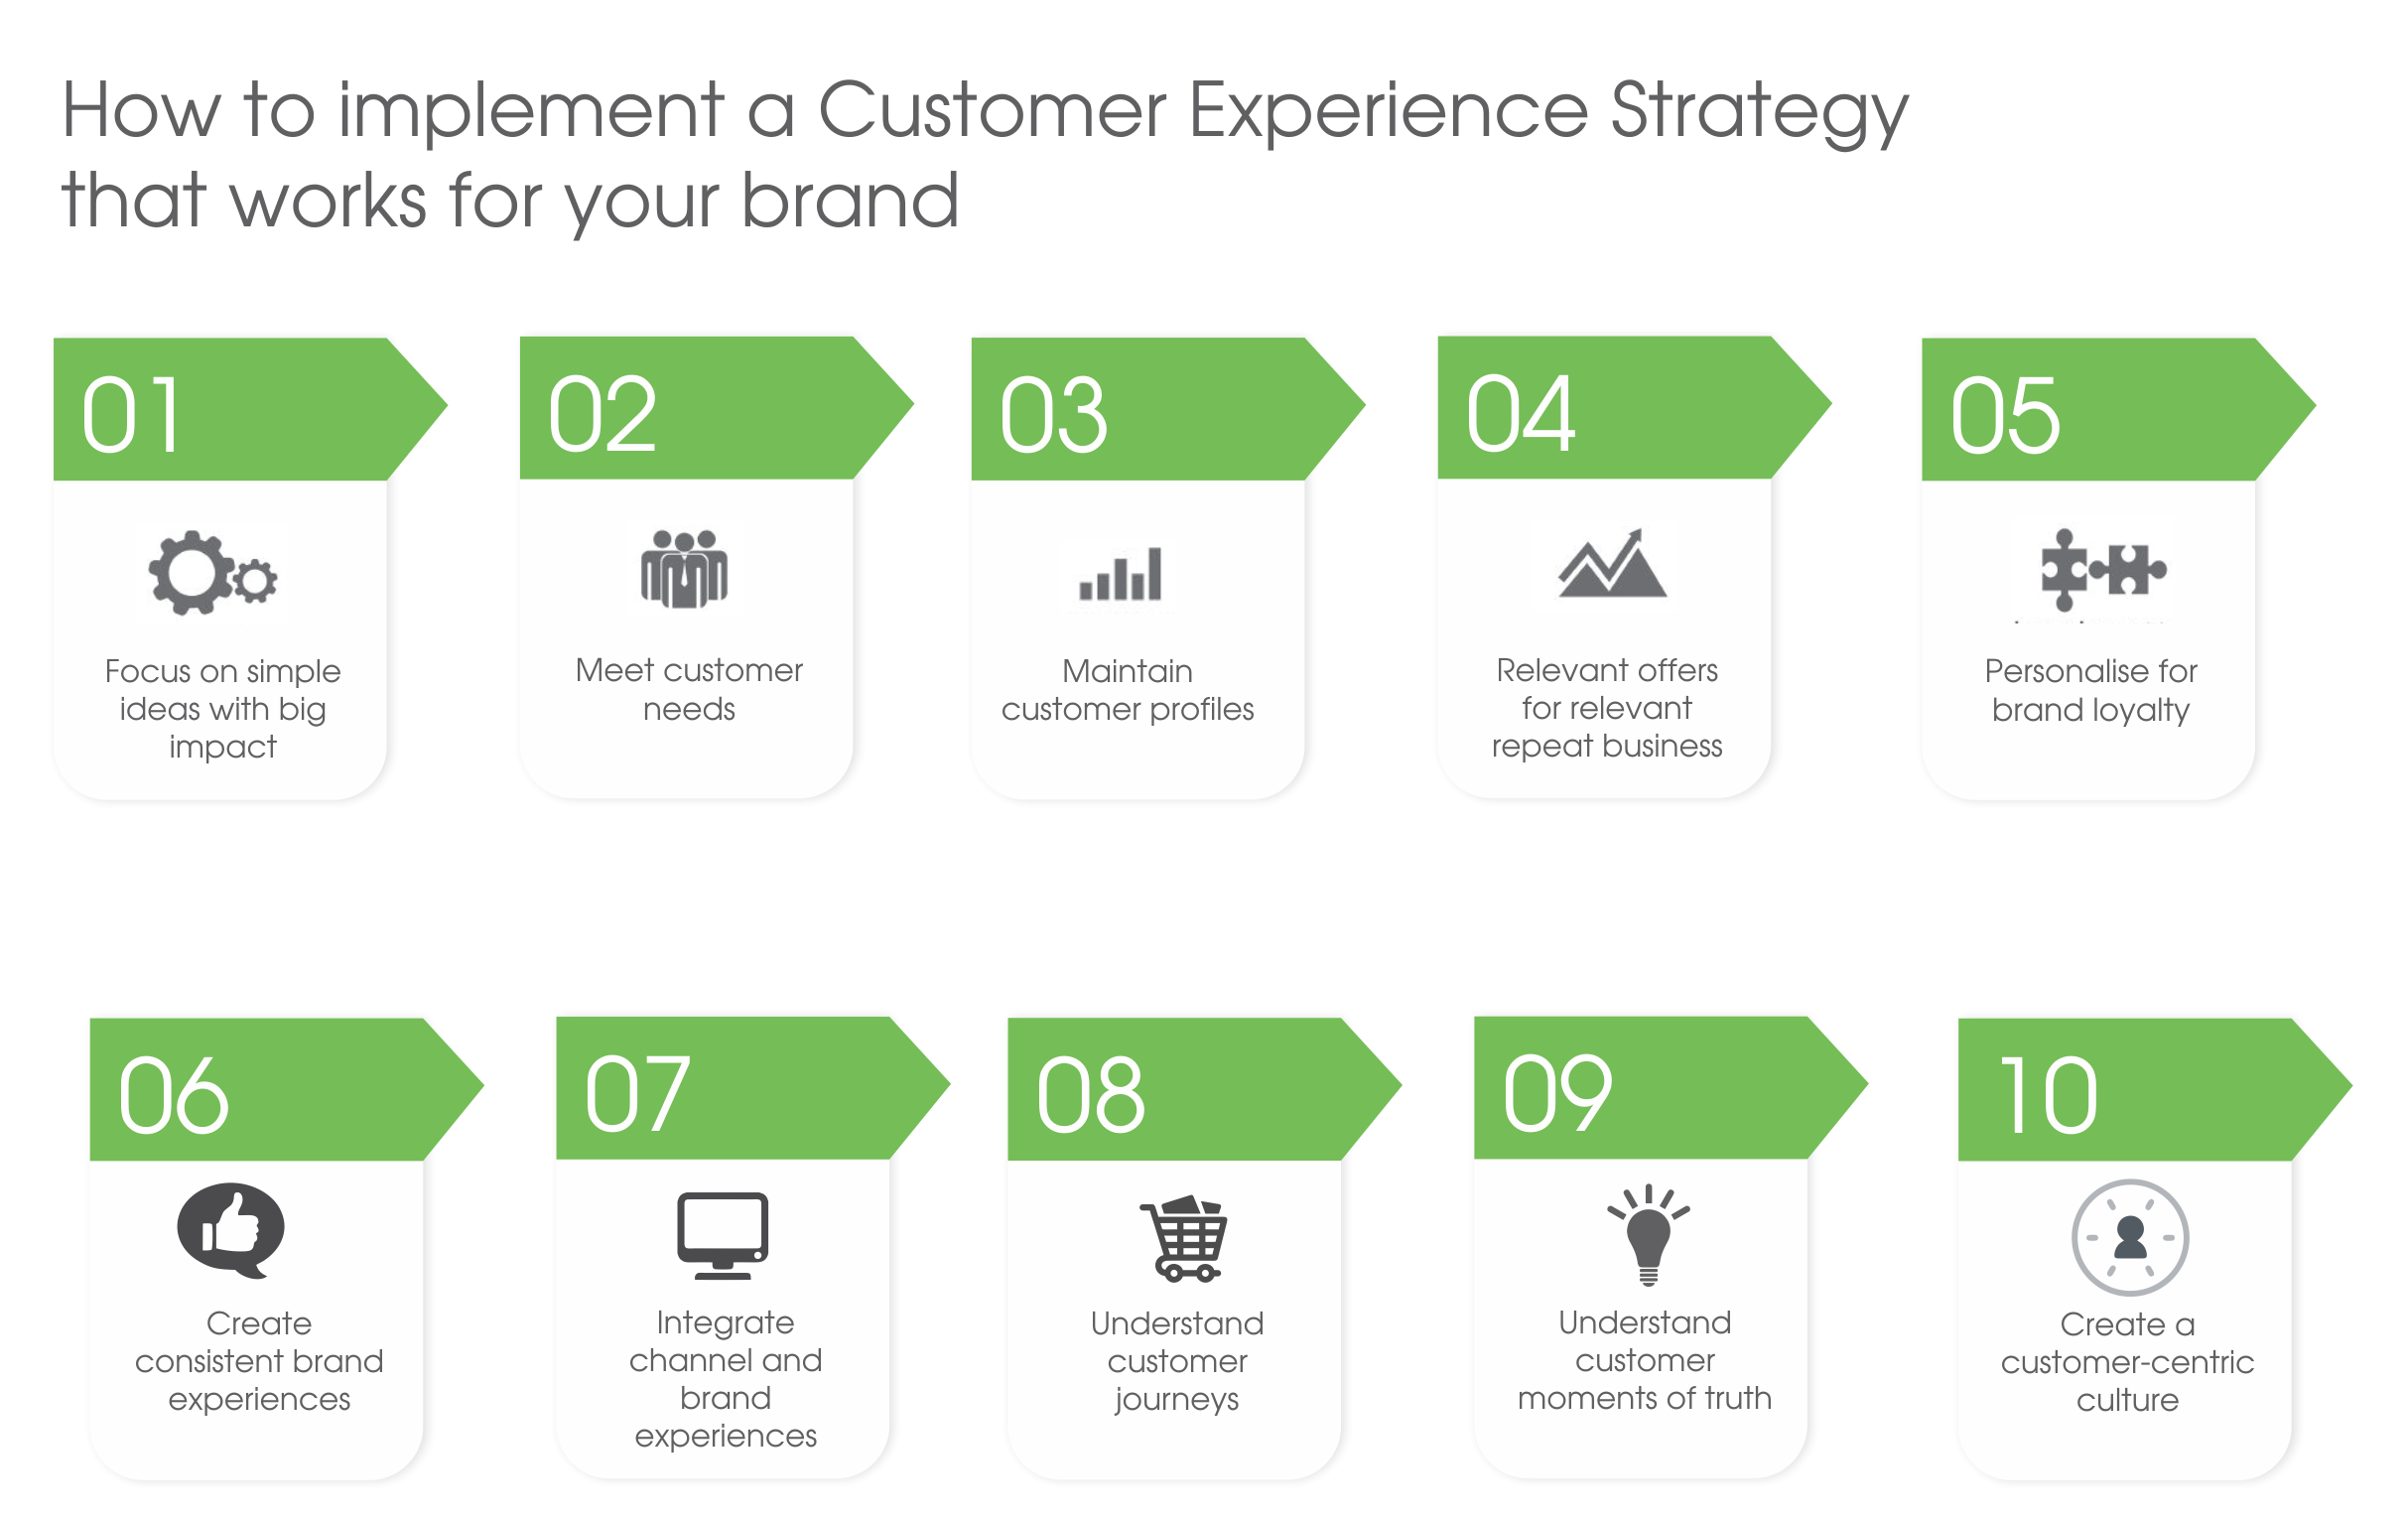 how-to-implement-a-customer-experience-strategy-that-works-for-your-brand